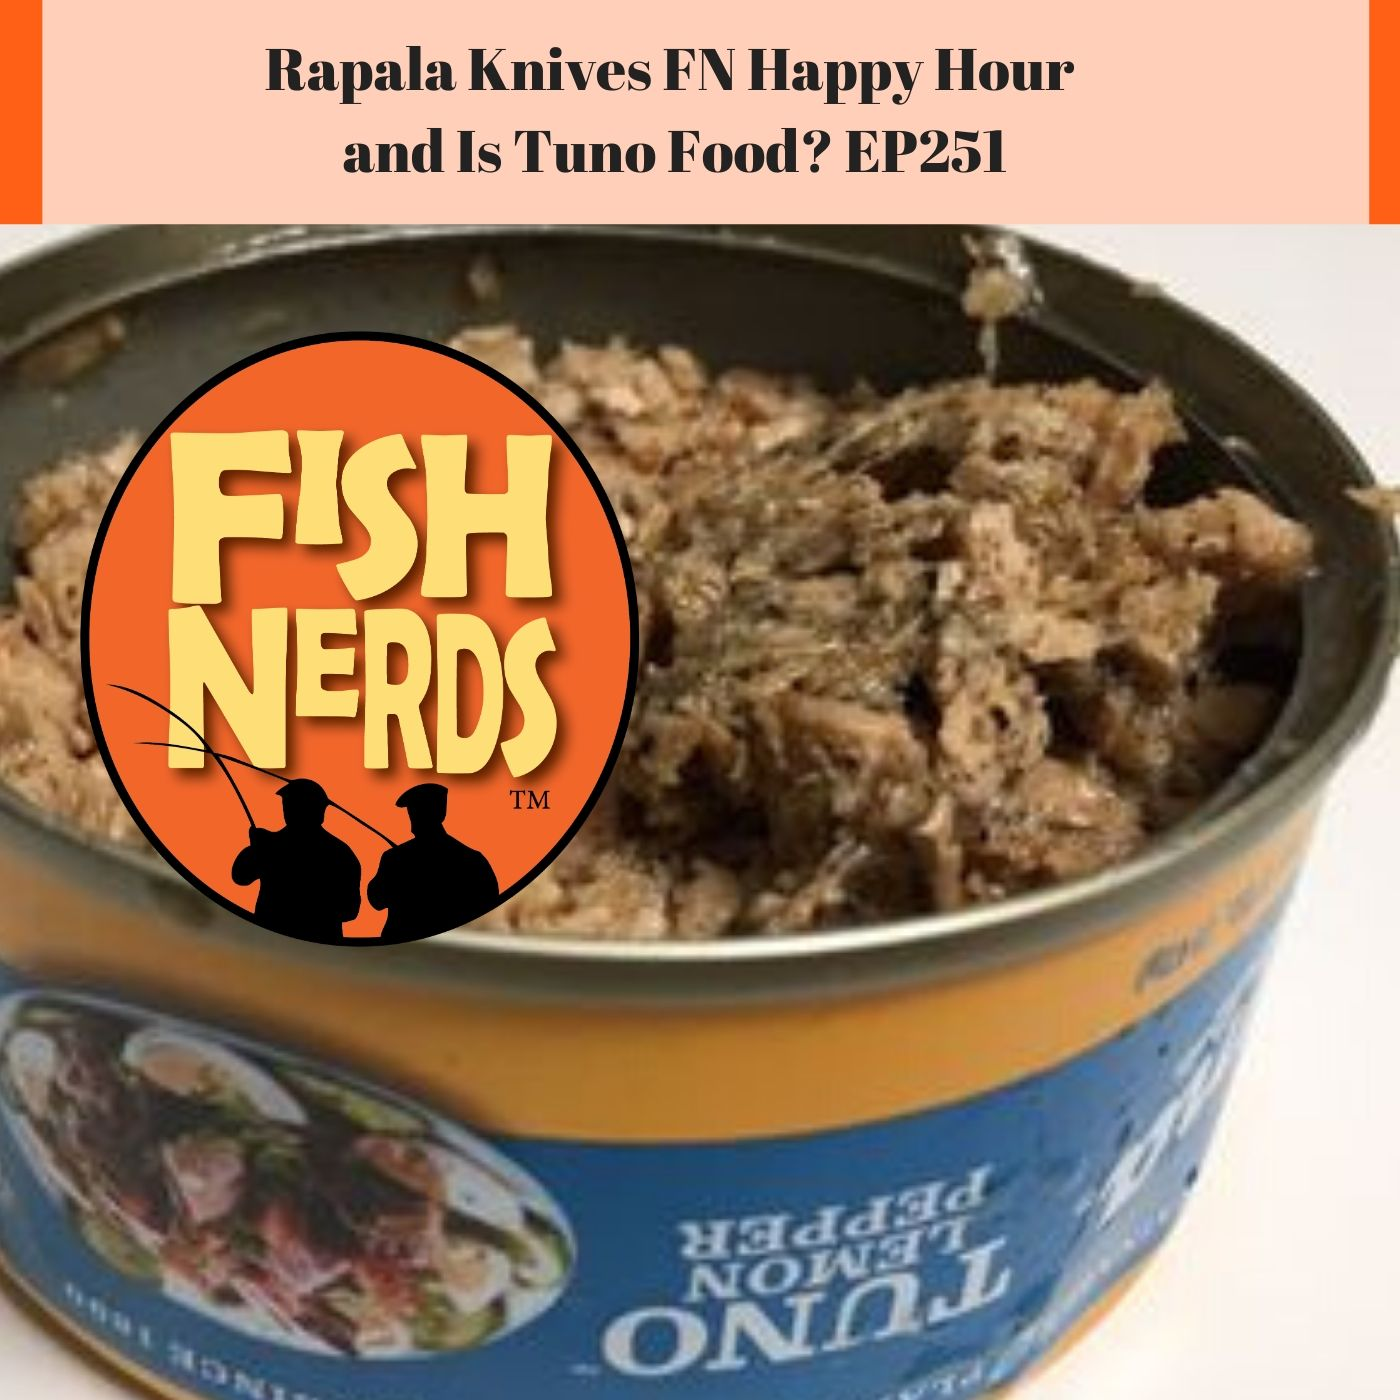 Artwork for Rapala Knives FN Happy Hour and Is Tuno Food?